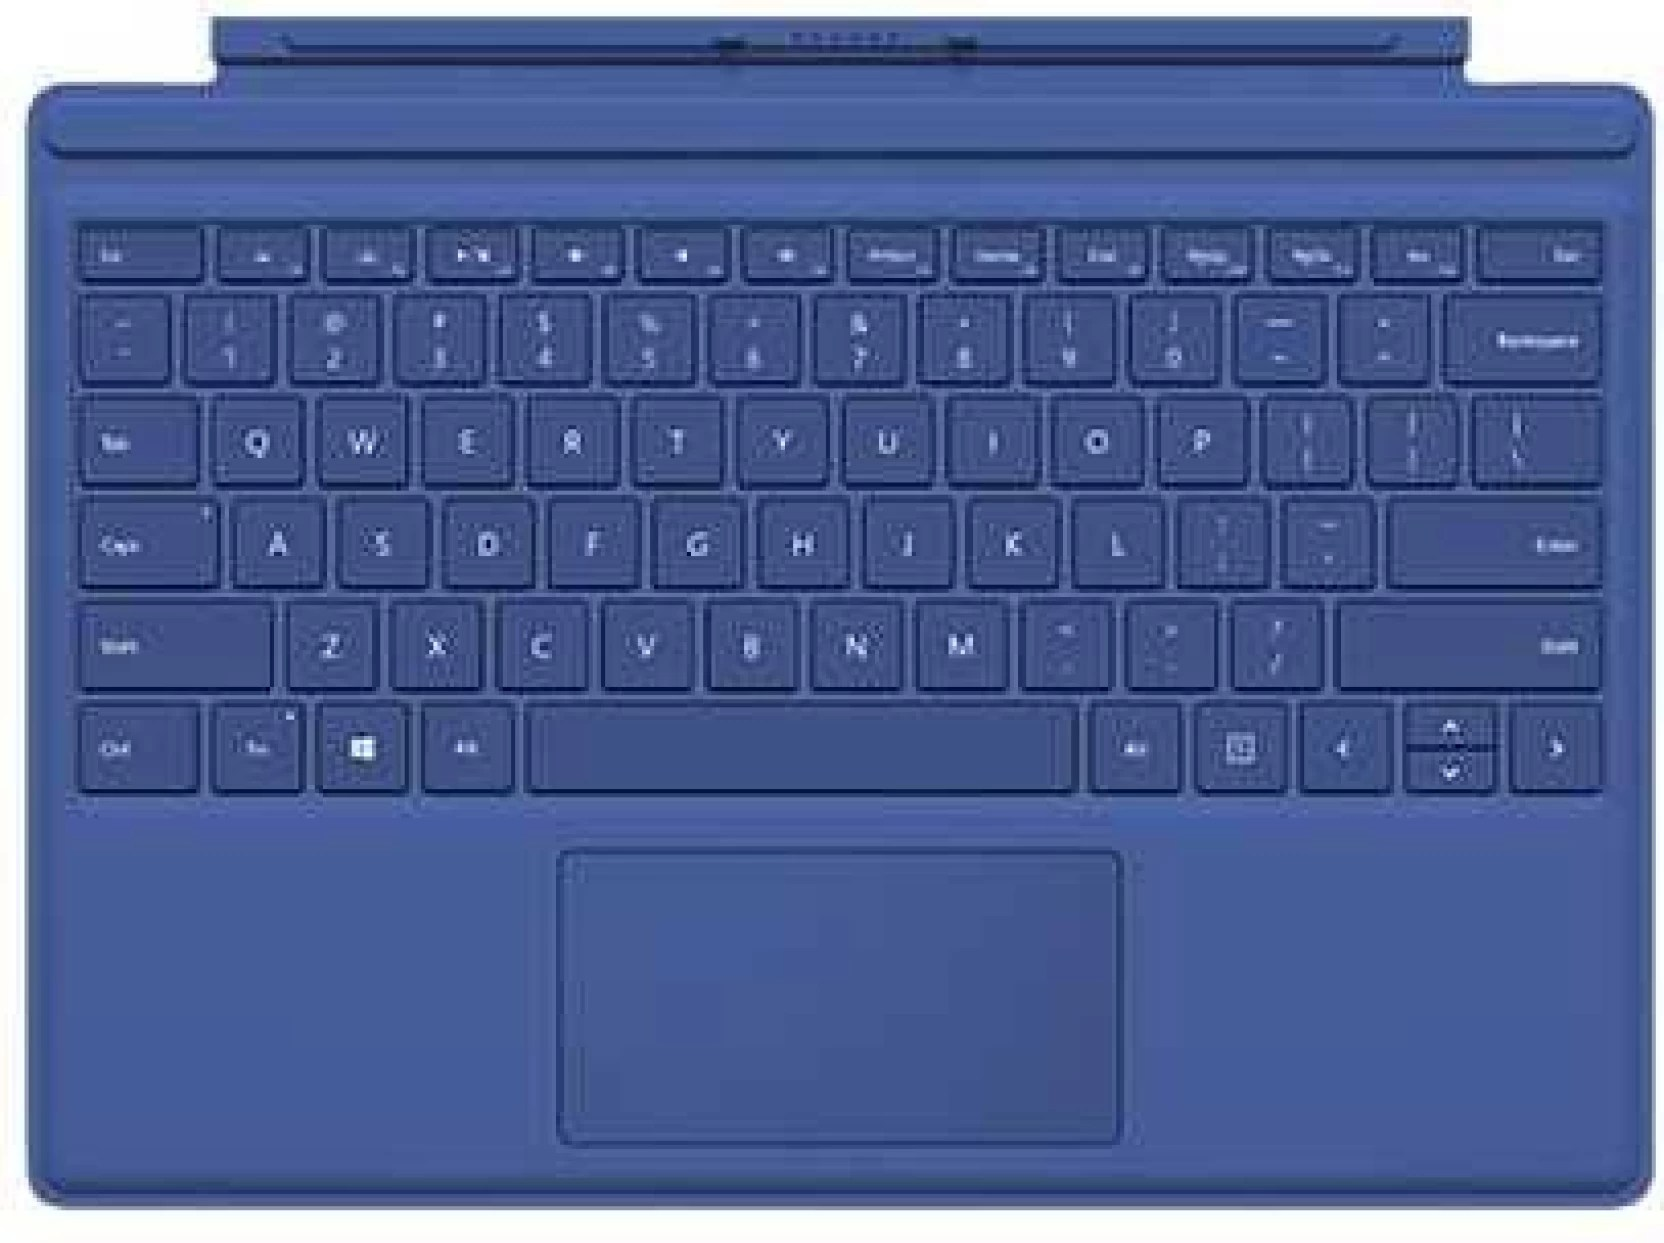 Microsoft Surface Pro 4 Type Cover Magnetic Laptop